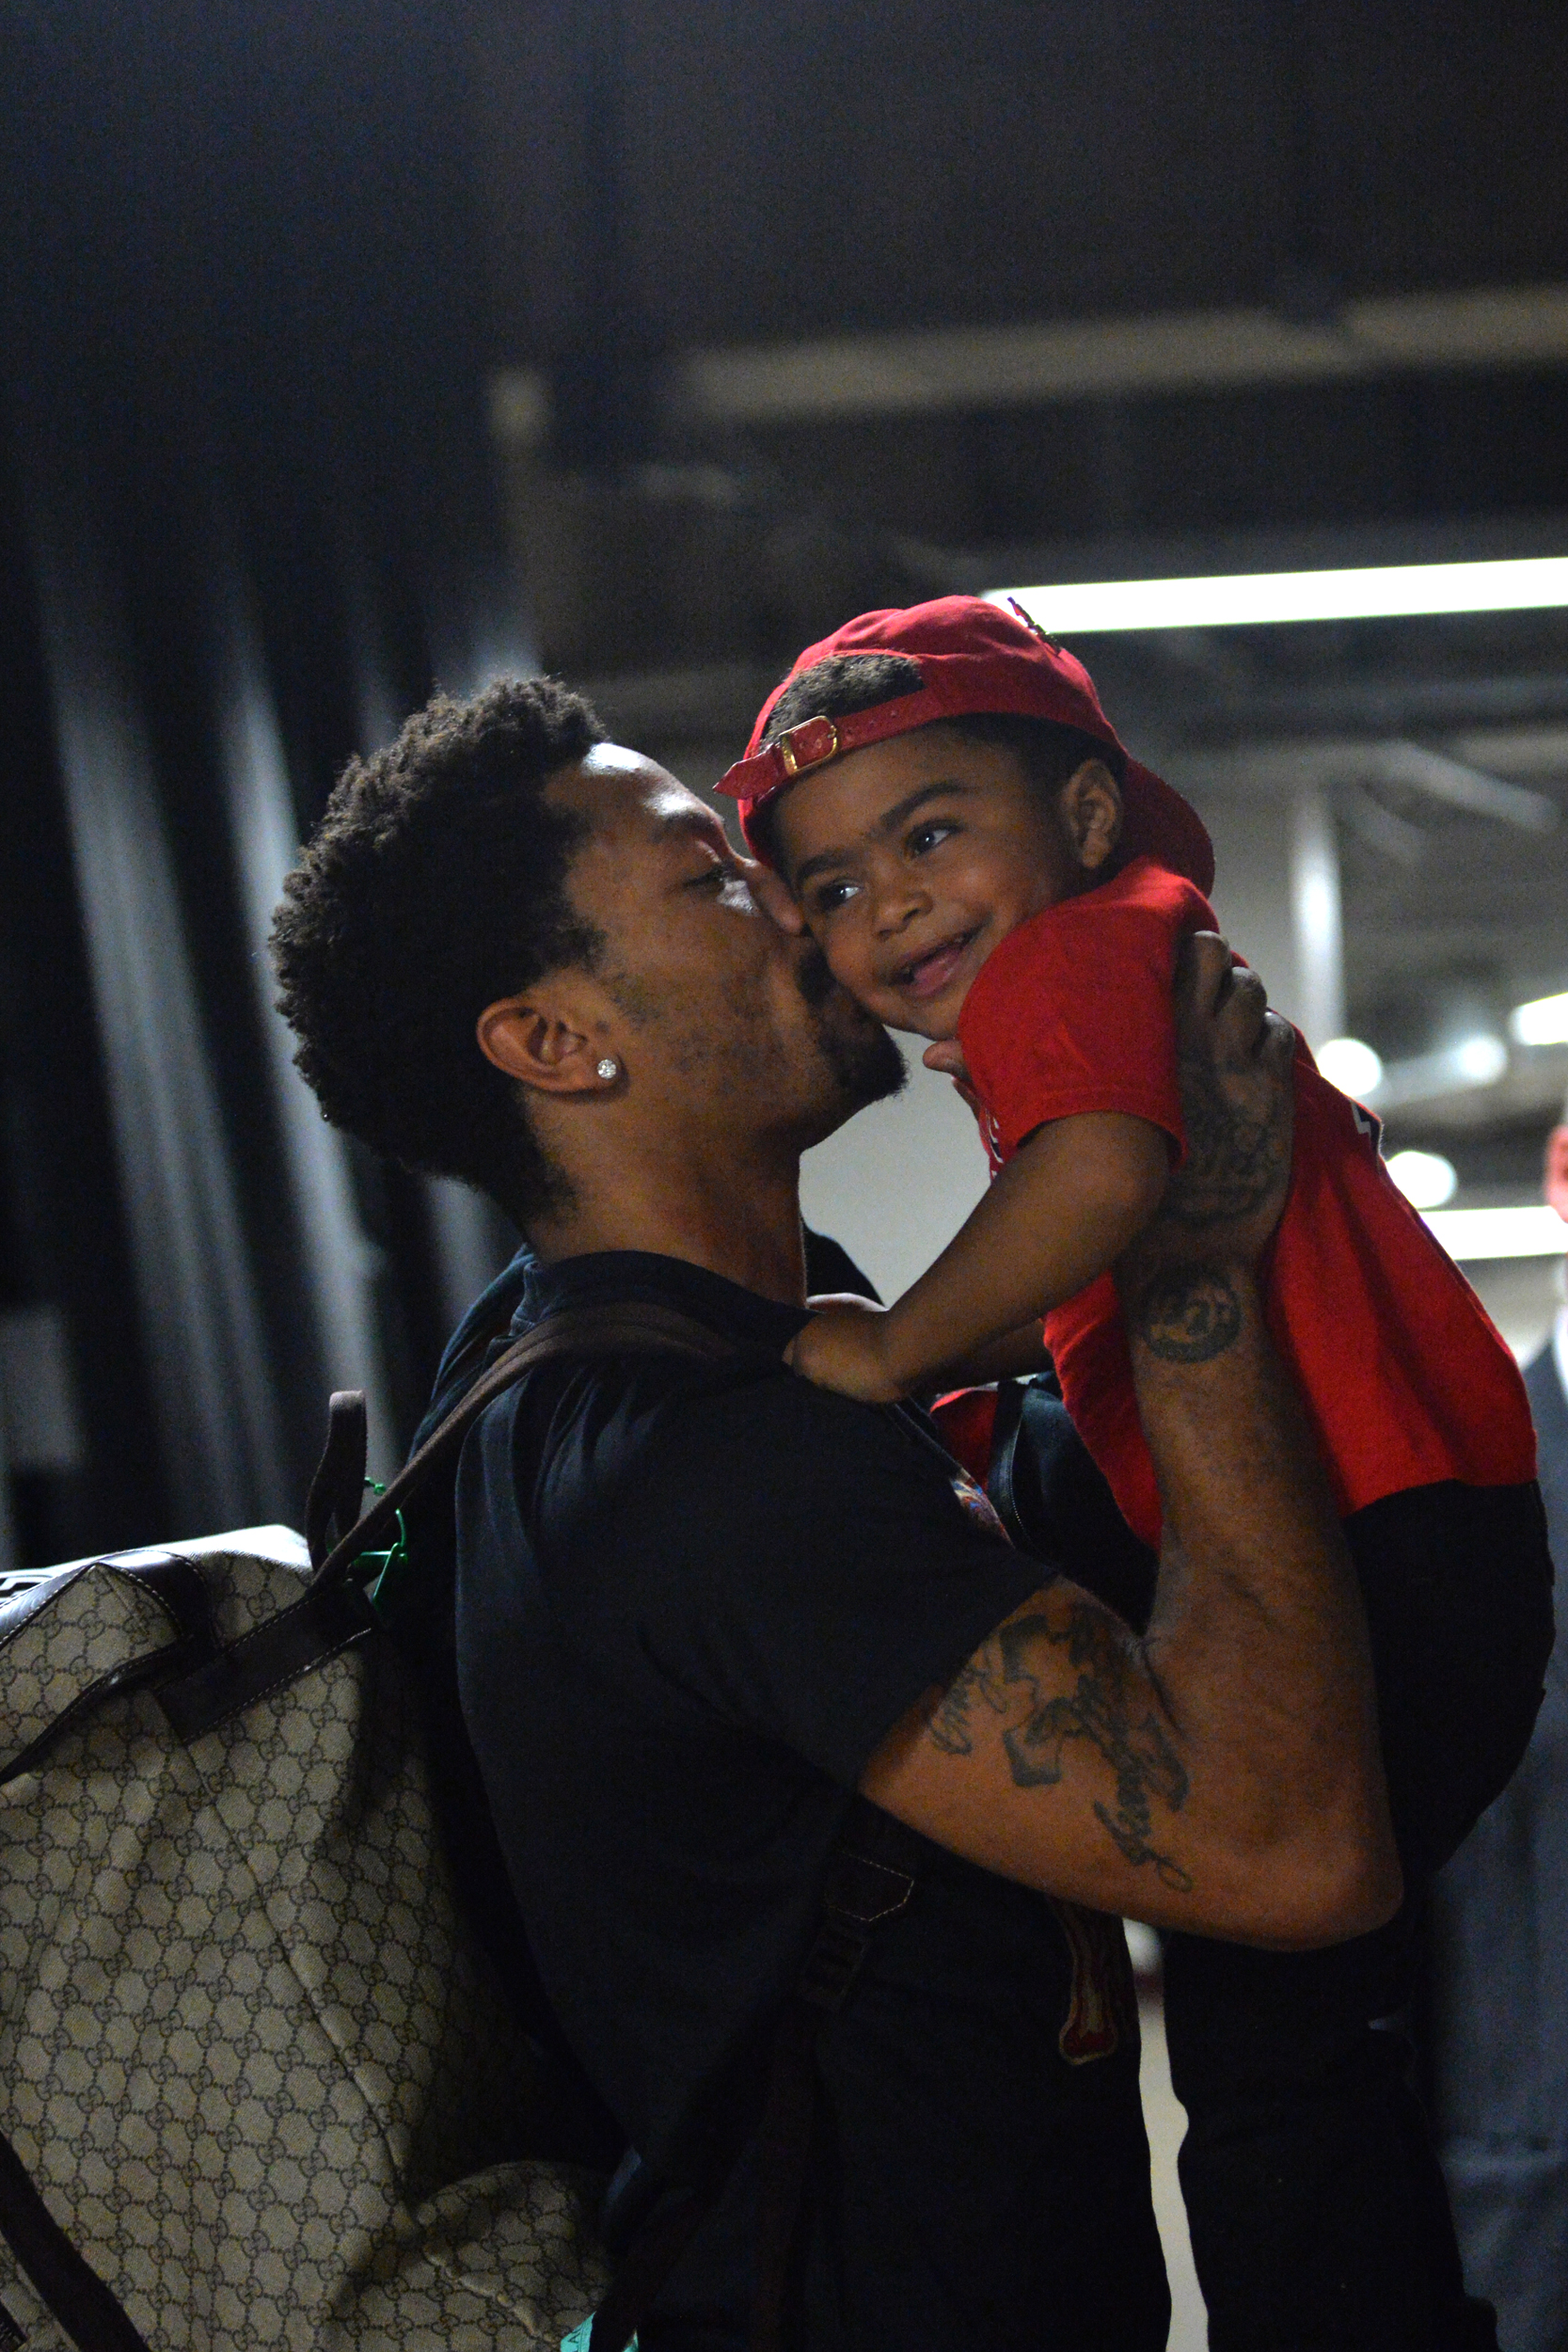 e9a6691221a Derrick Rose  1 of the Chicago Bulls gives his son P.J. a kiss after  hitting the game winning shot against the Cleveland Cavaliers at the United  Center ...